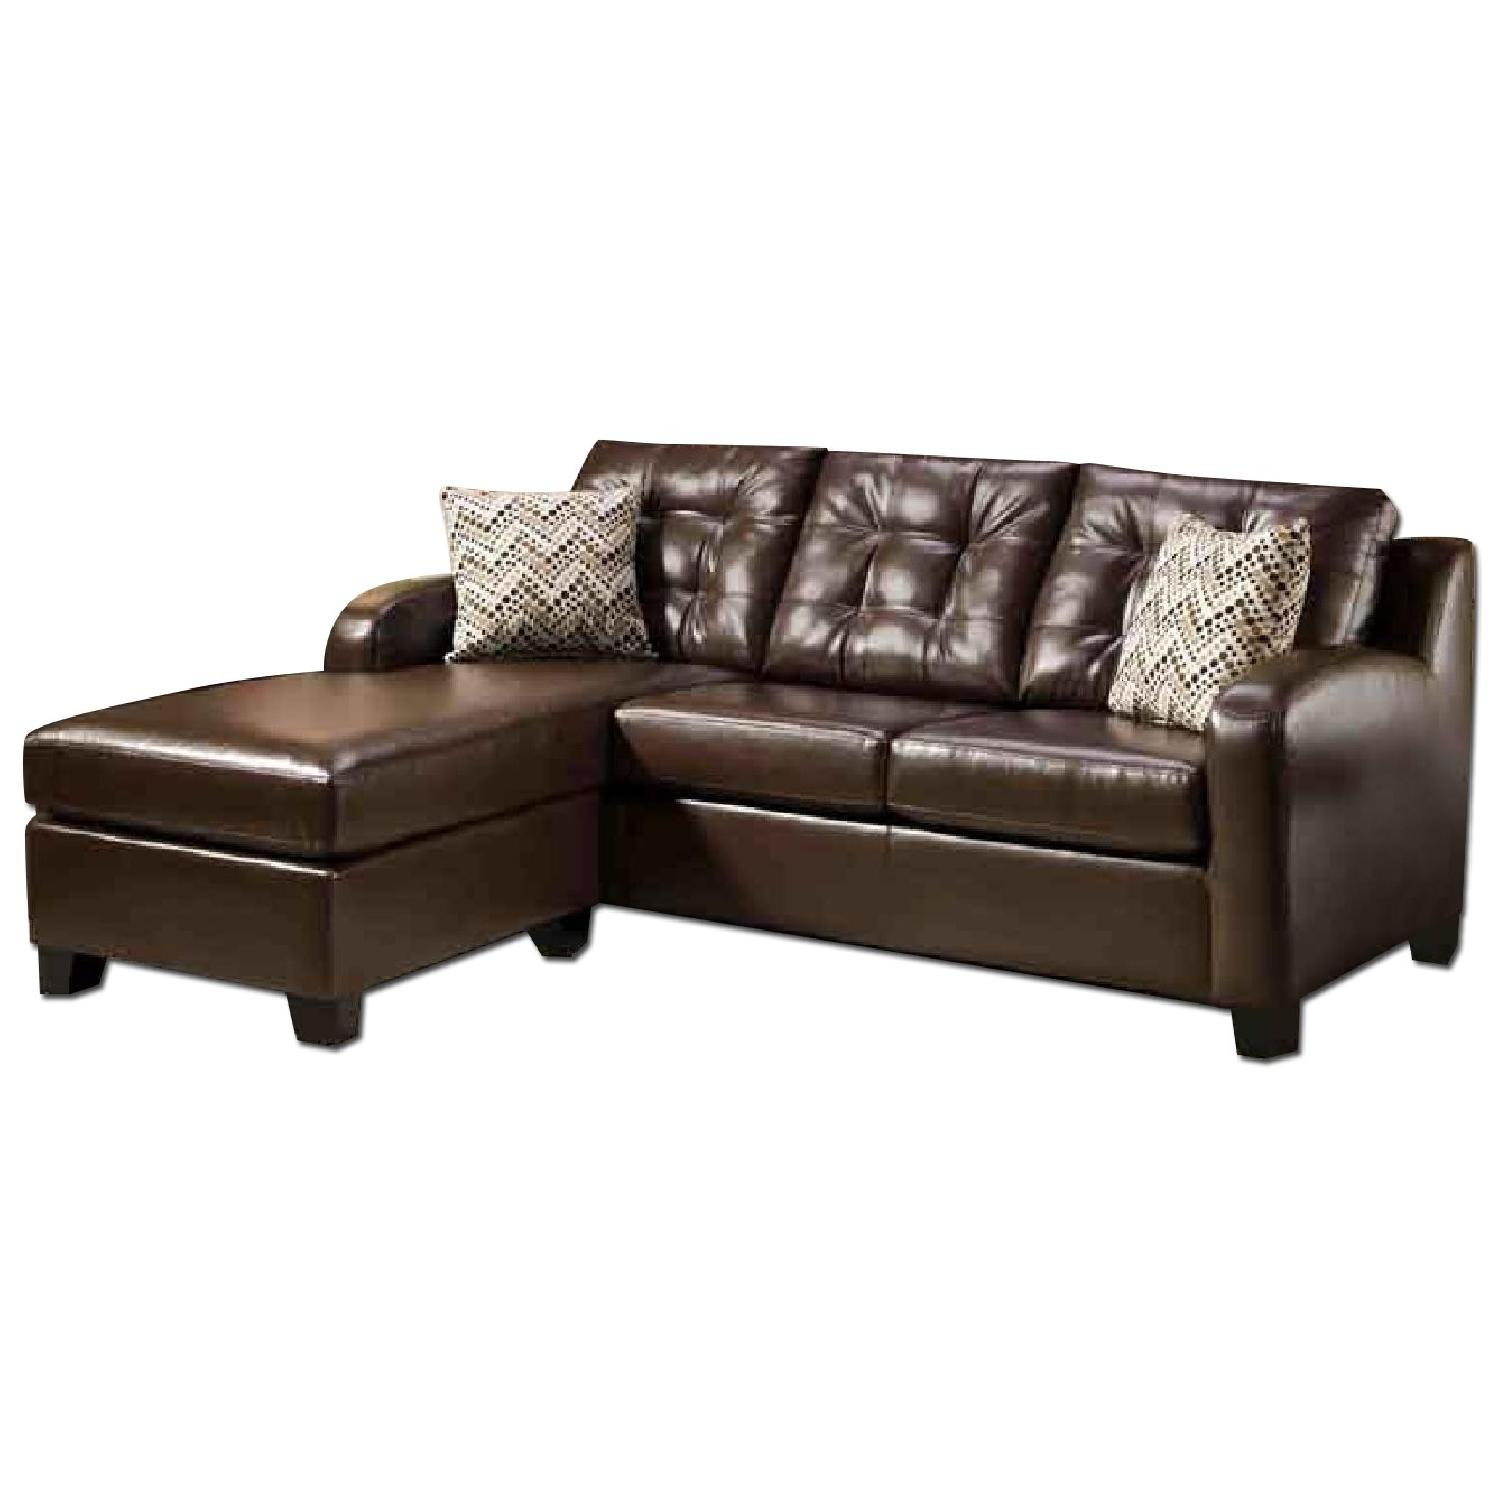 Leather Sofa w/ Chaise